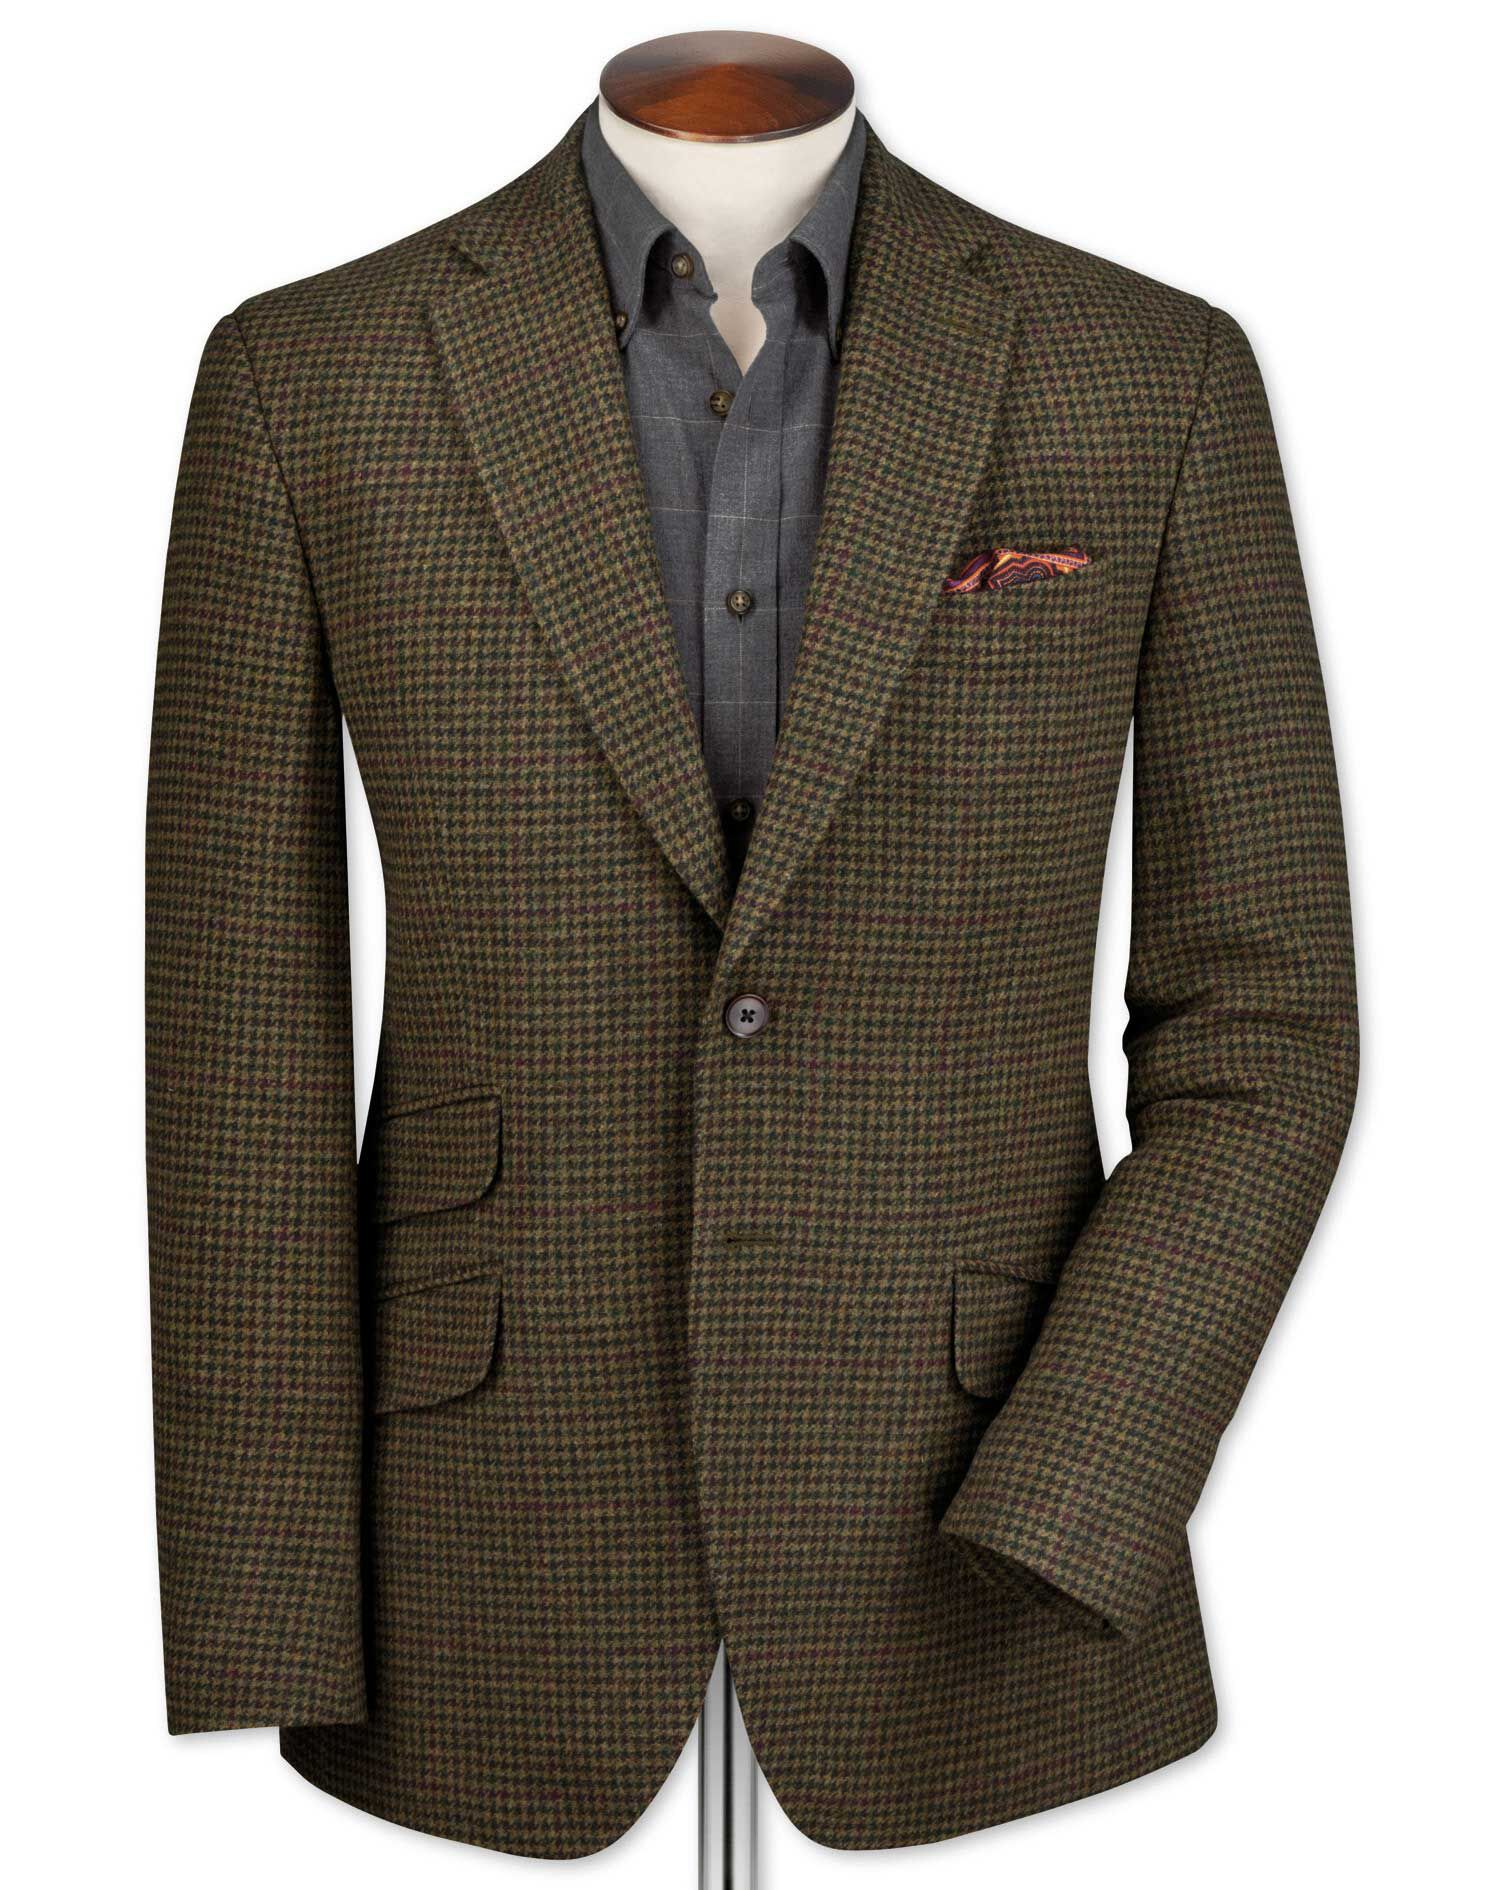 Slim Fit Olive Checkered Luxury Border Tweed Wool Jacket Size 42 Long by Charles Tyrwhitt